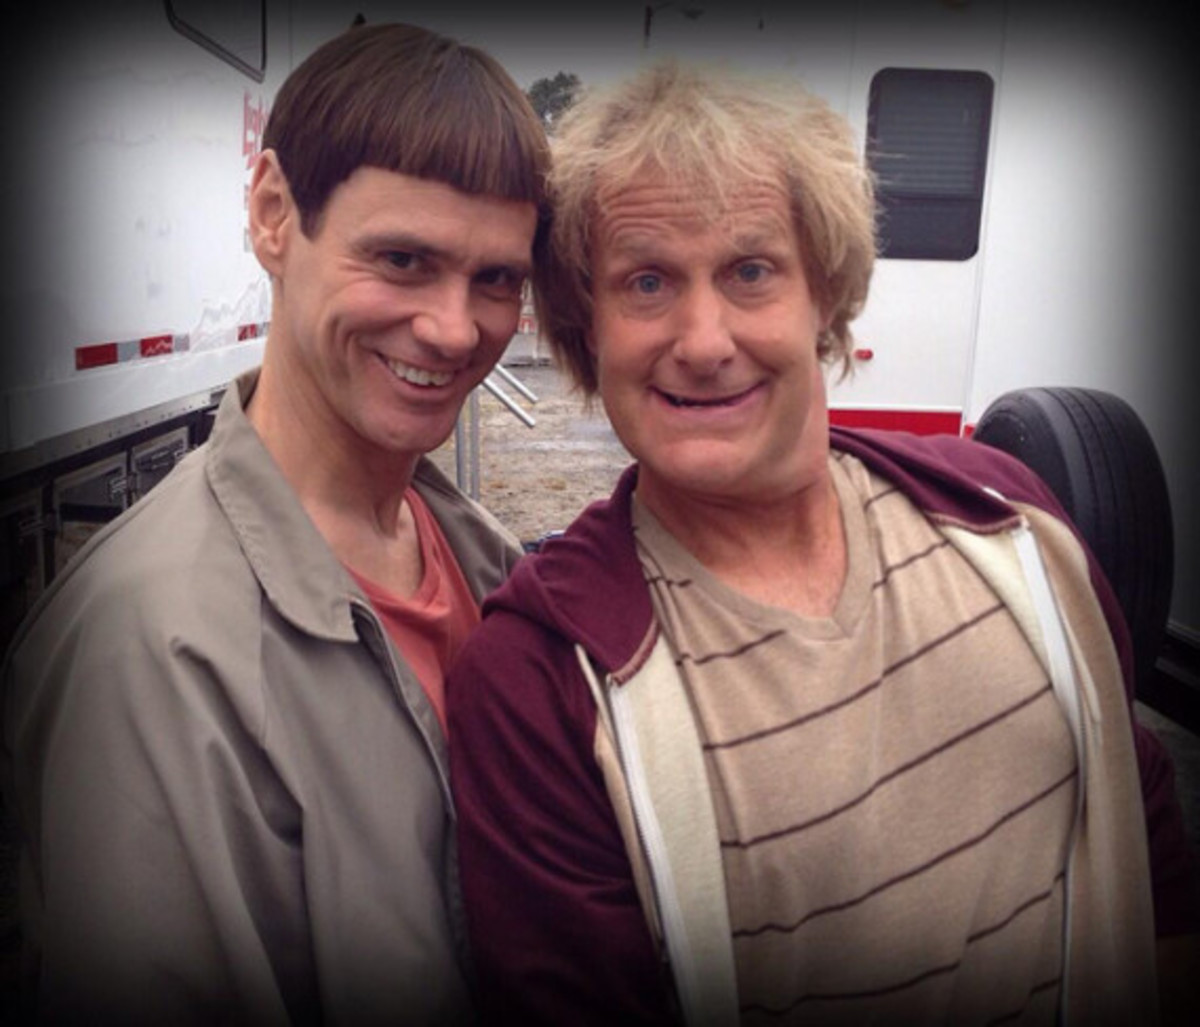 dumb-and-dumber-to-first-look-at-jim-carrey-and-jeff-daniels-on-set-03